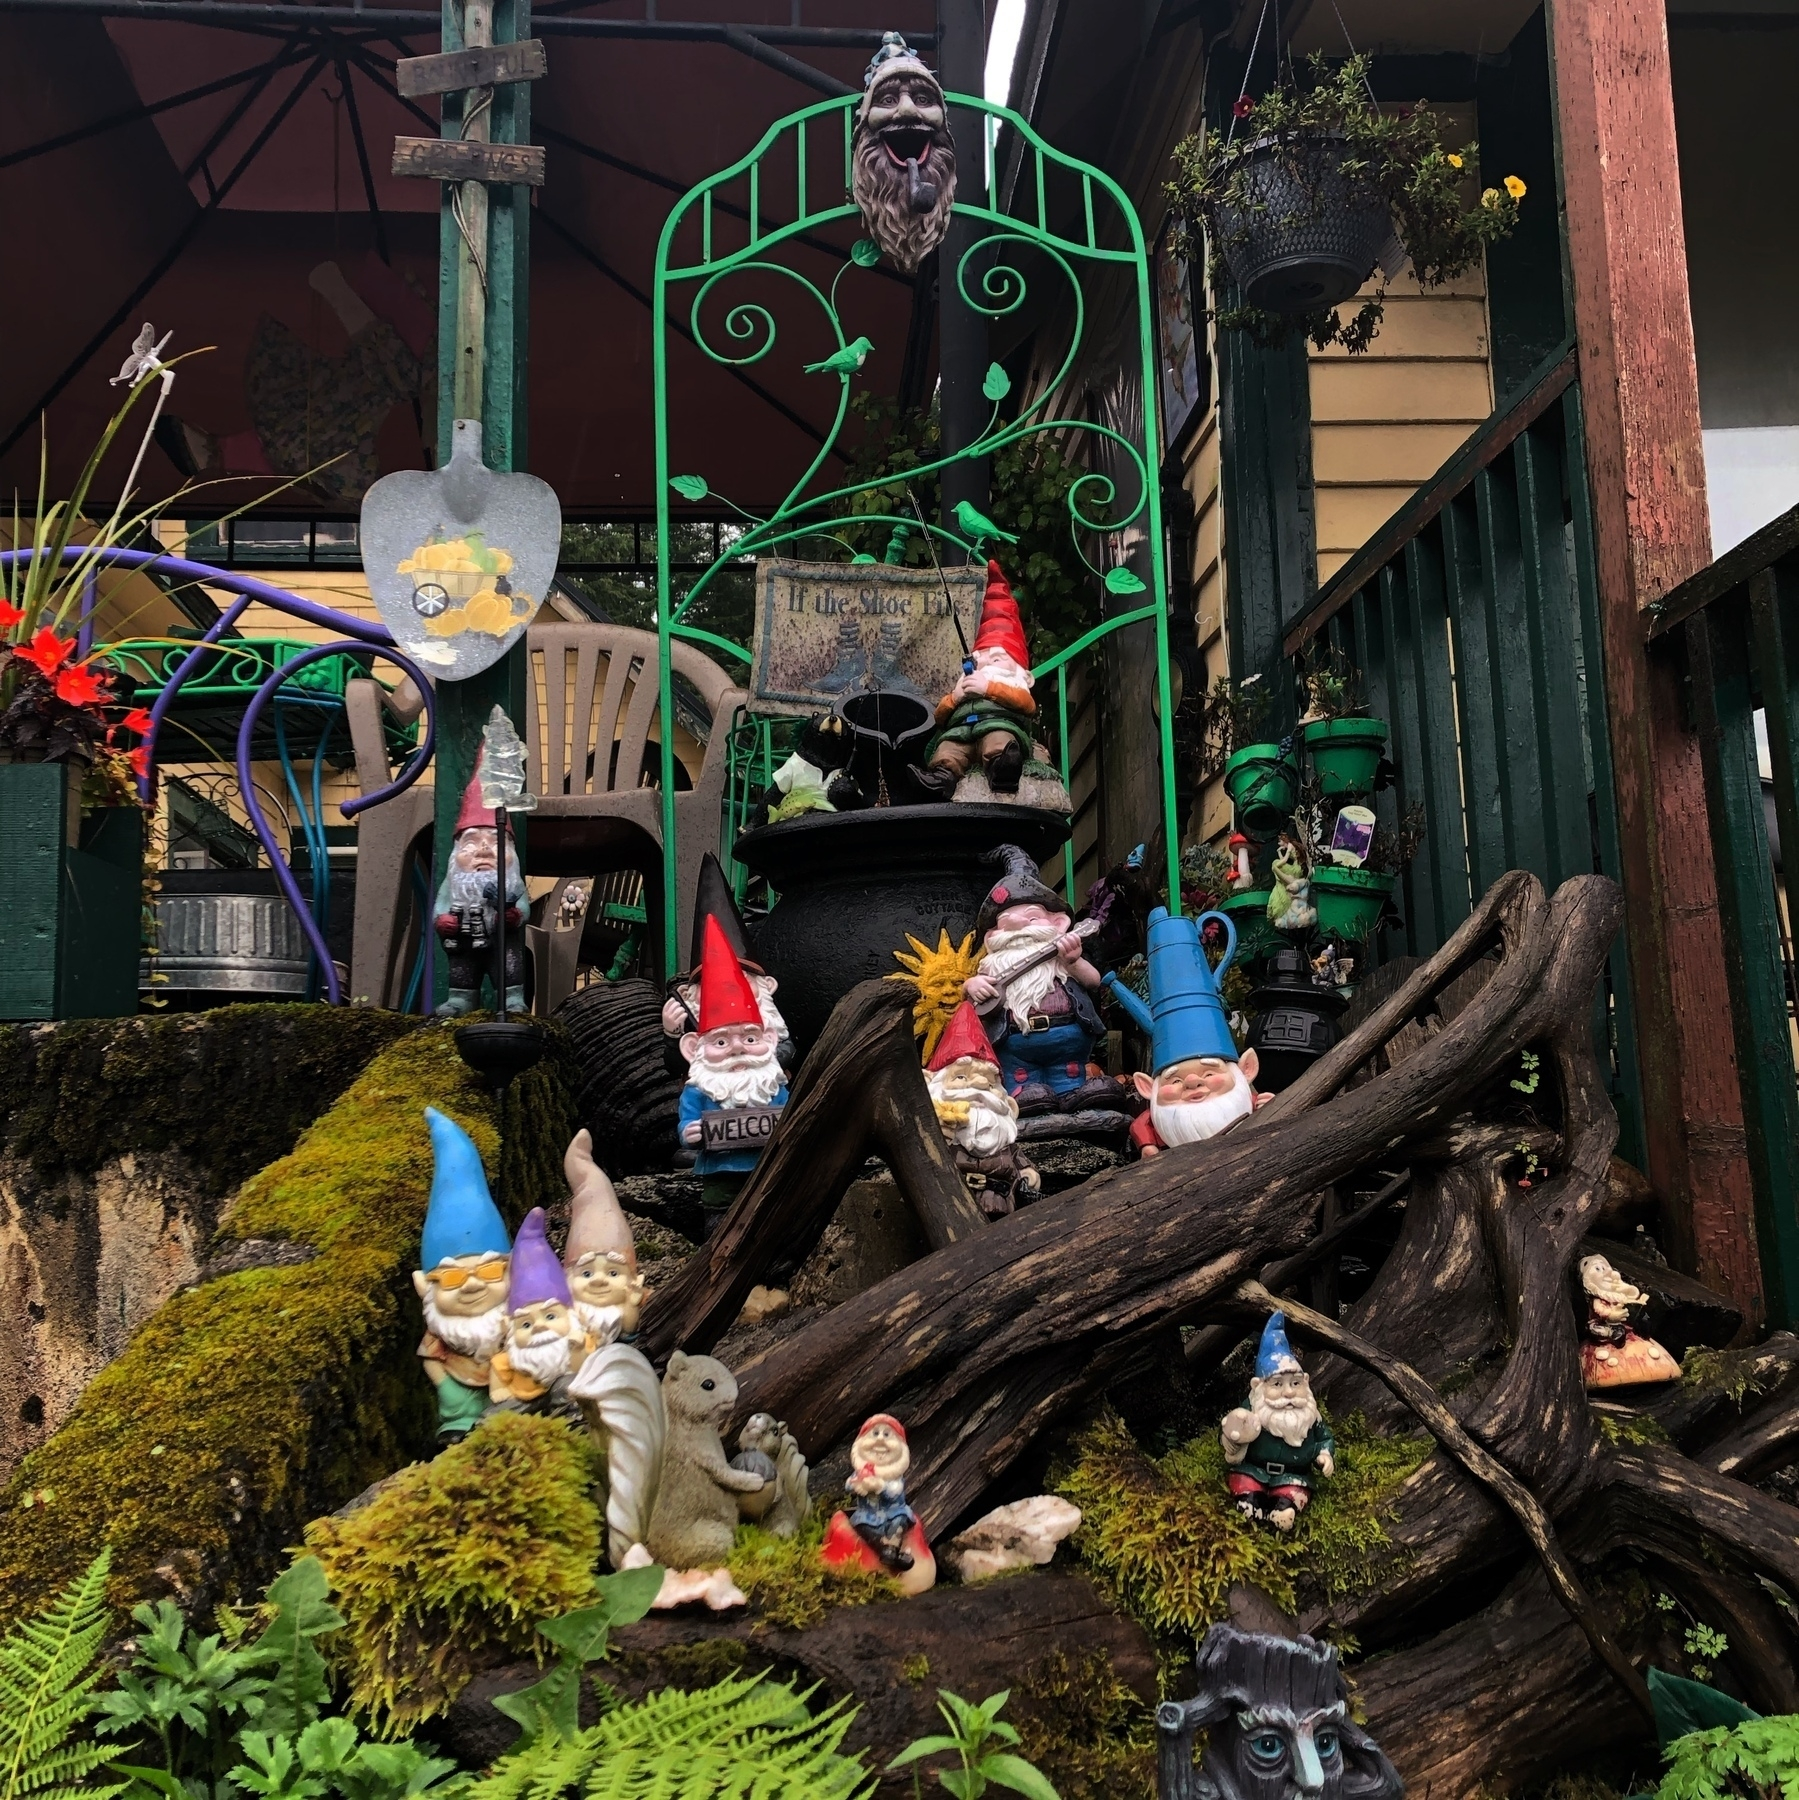 A view of a dozen or so cheerful garden gnomes resting in a residential garden. Some play instruments, others hold binoculars or fishing gear.